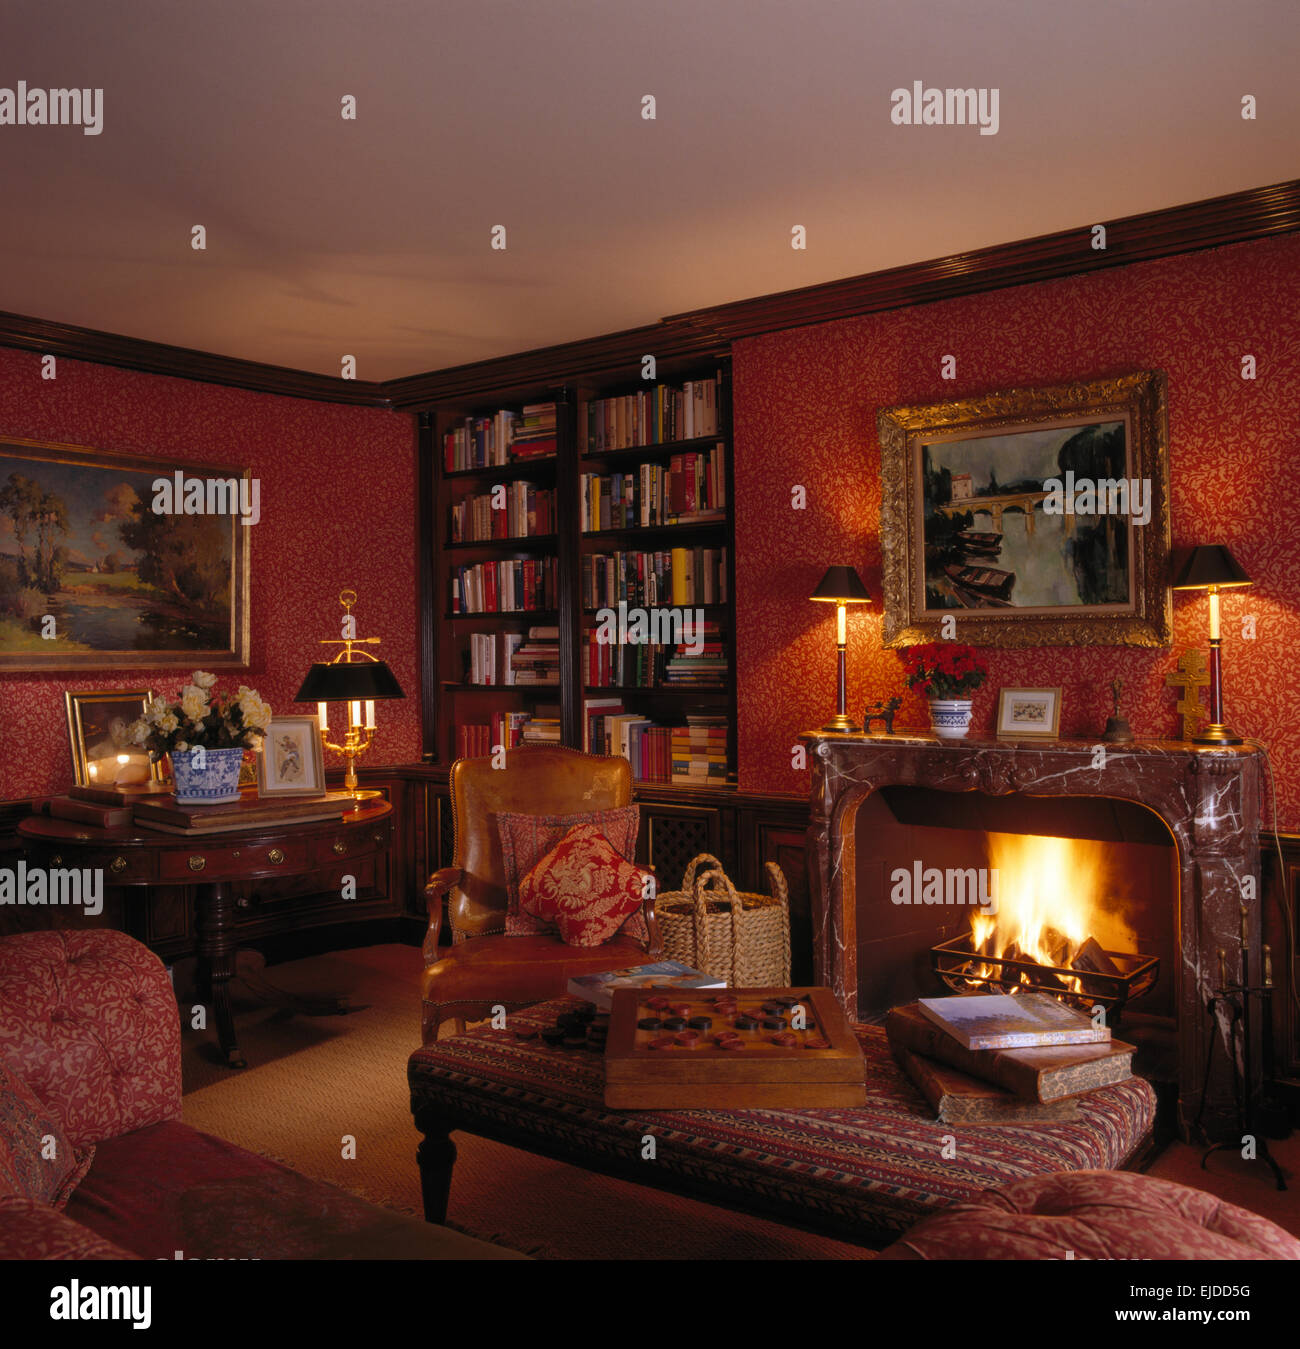 Lighted Fire In Fireplace Nineties Living Room With Red Wallpaper And Fitted Bookcase